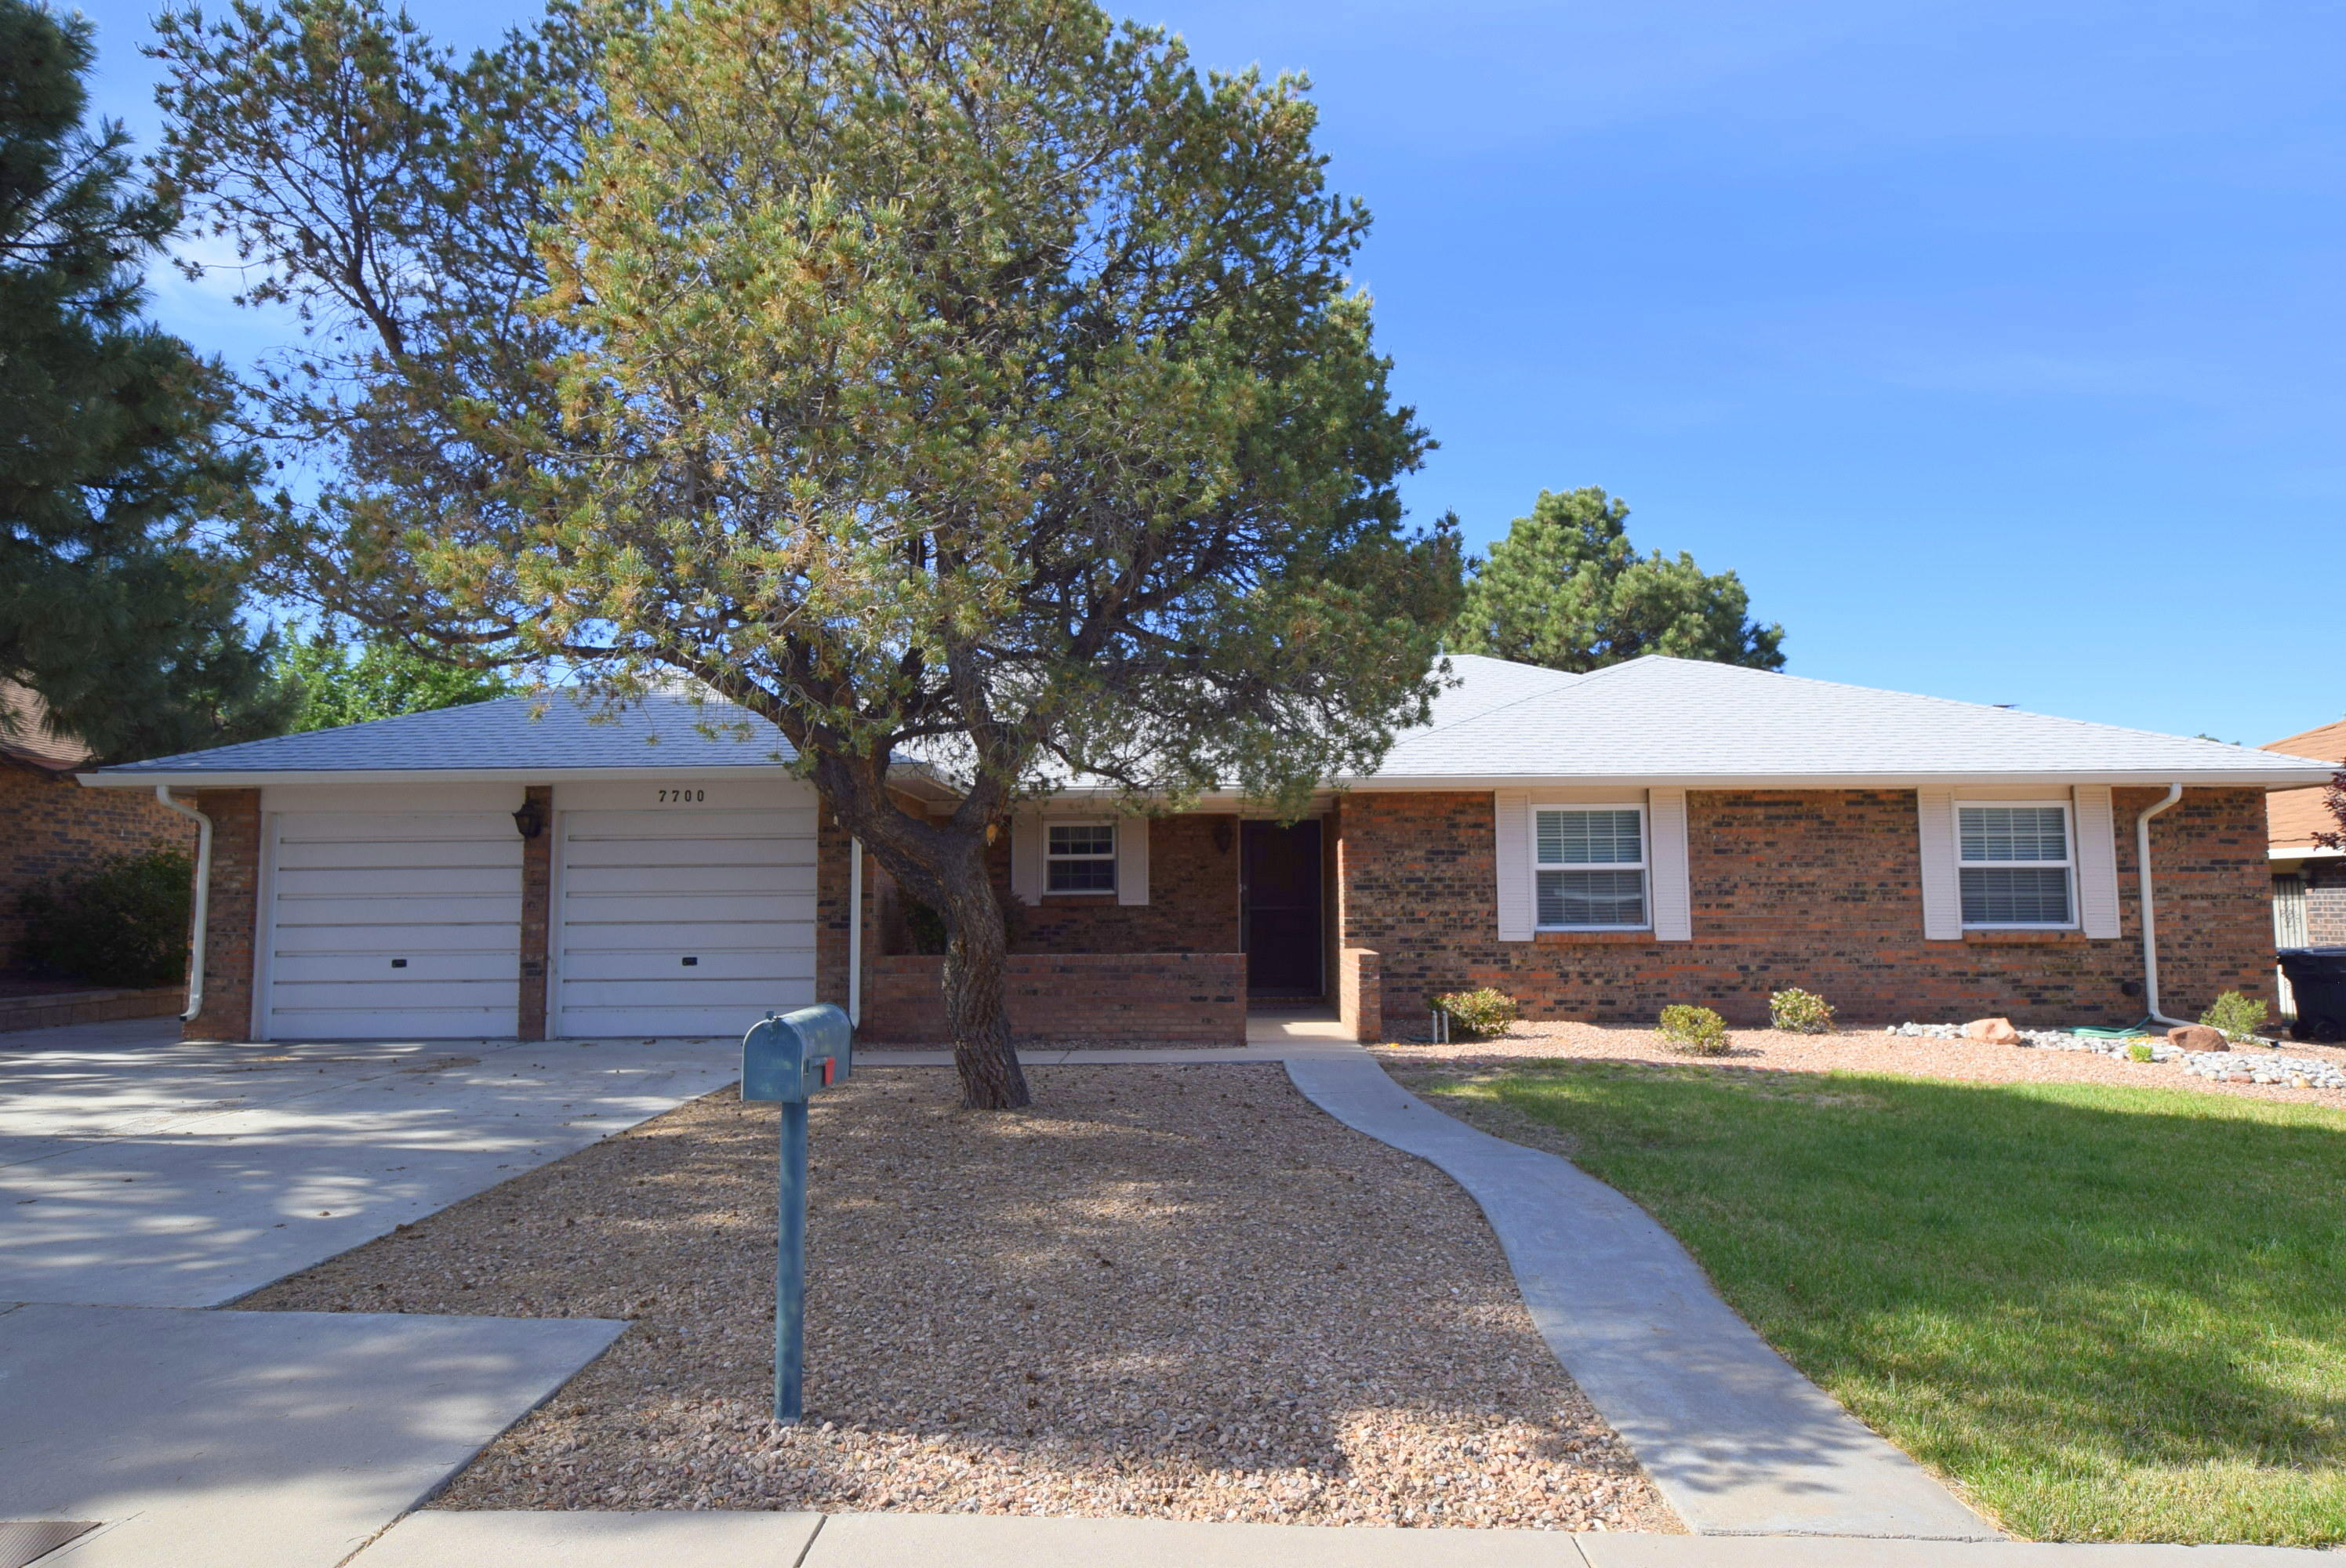 7700 LAMPLIGHTER Lane NE Property Photo - Albuquerque, NM real estate listing